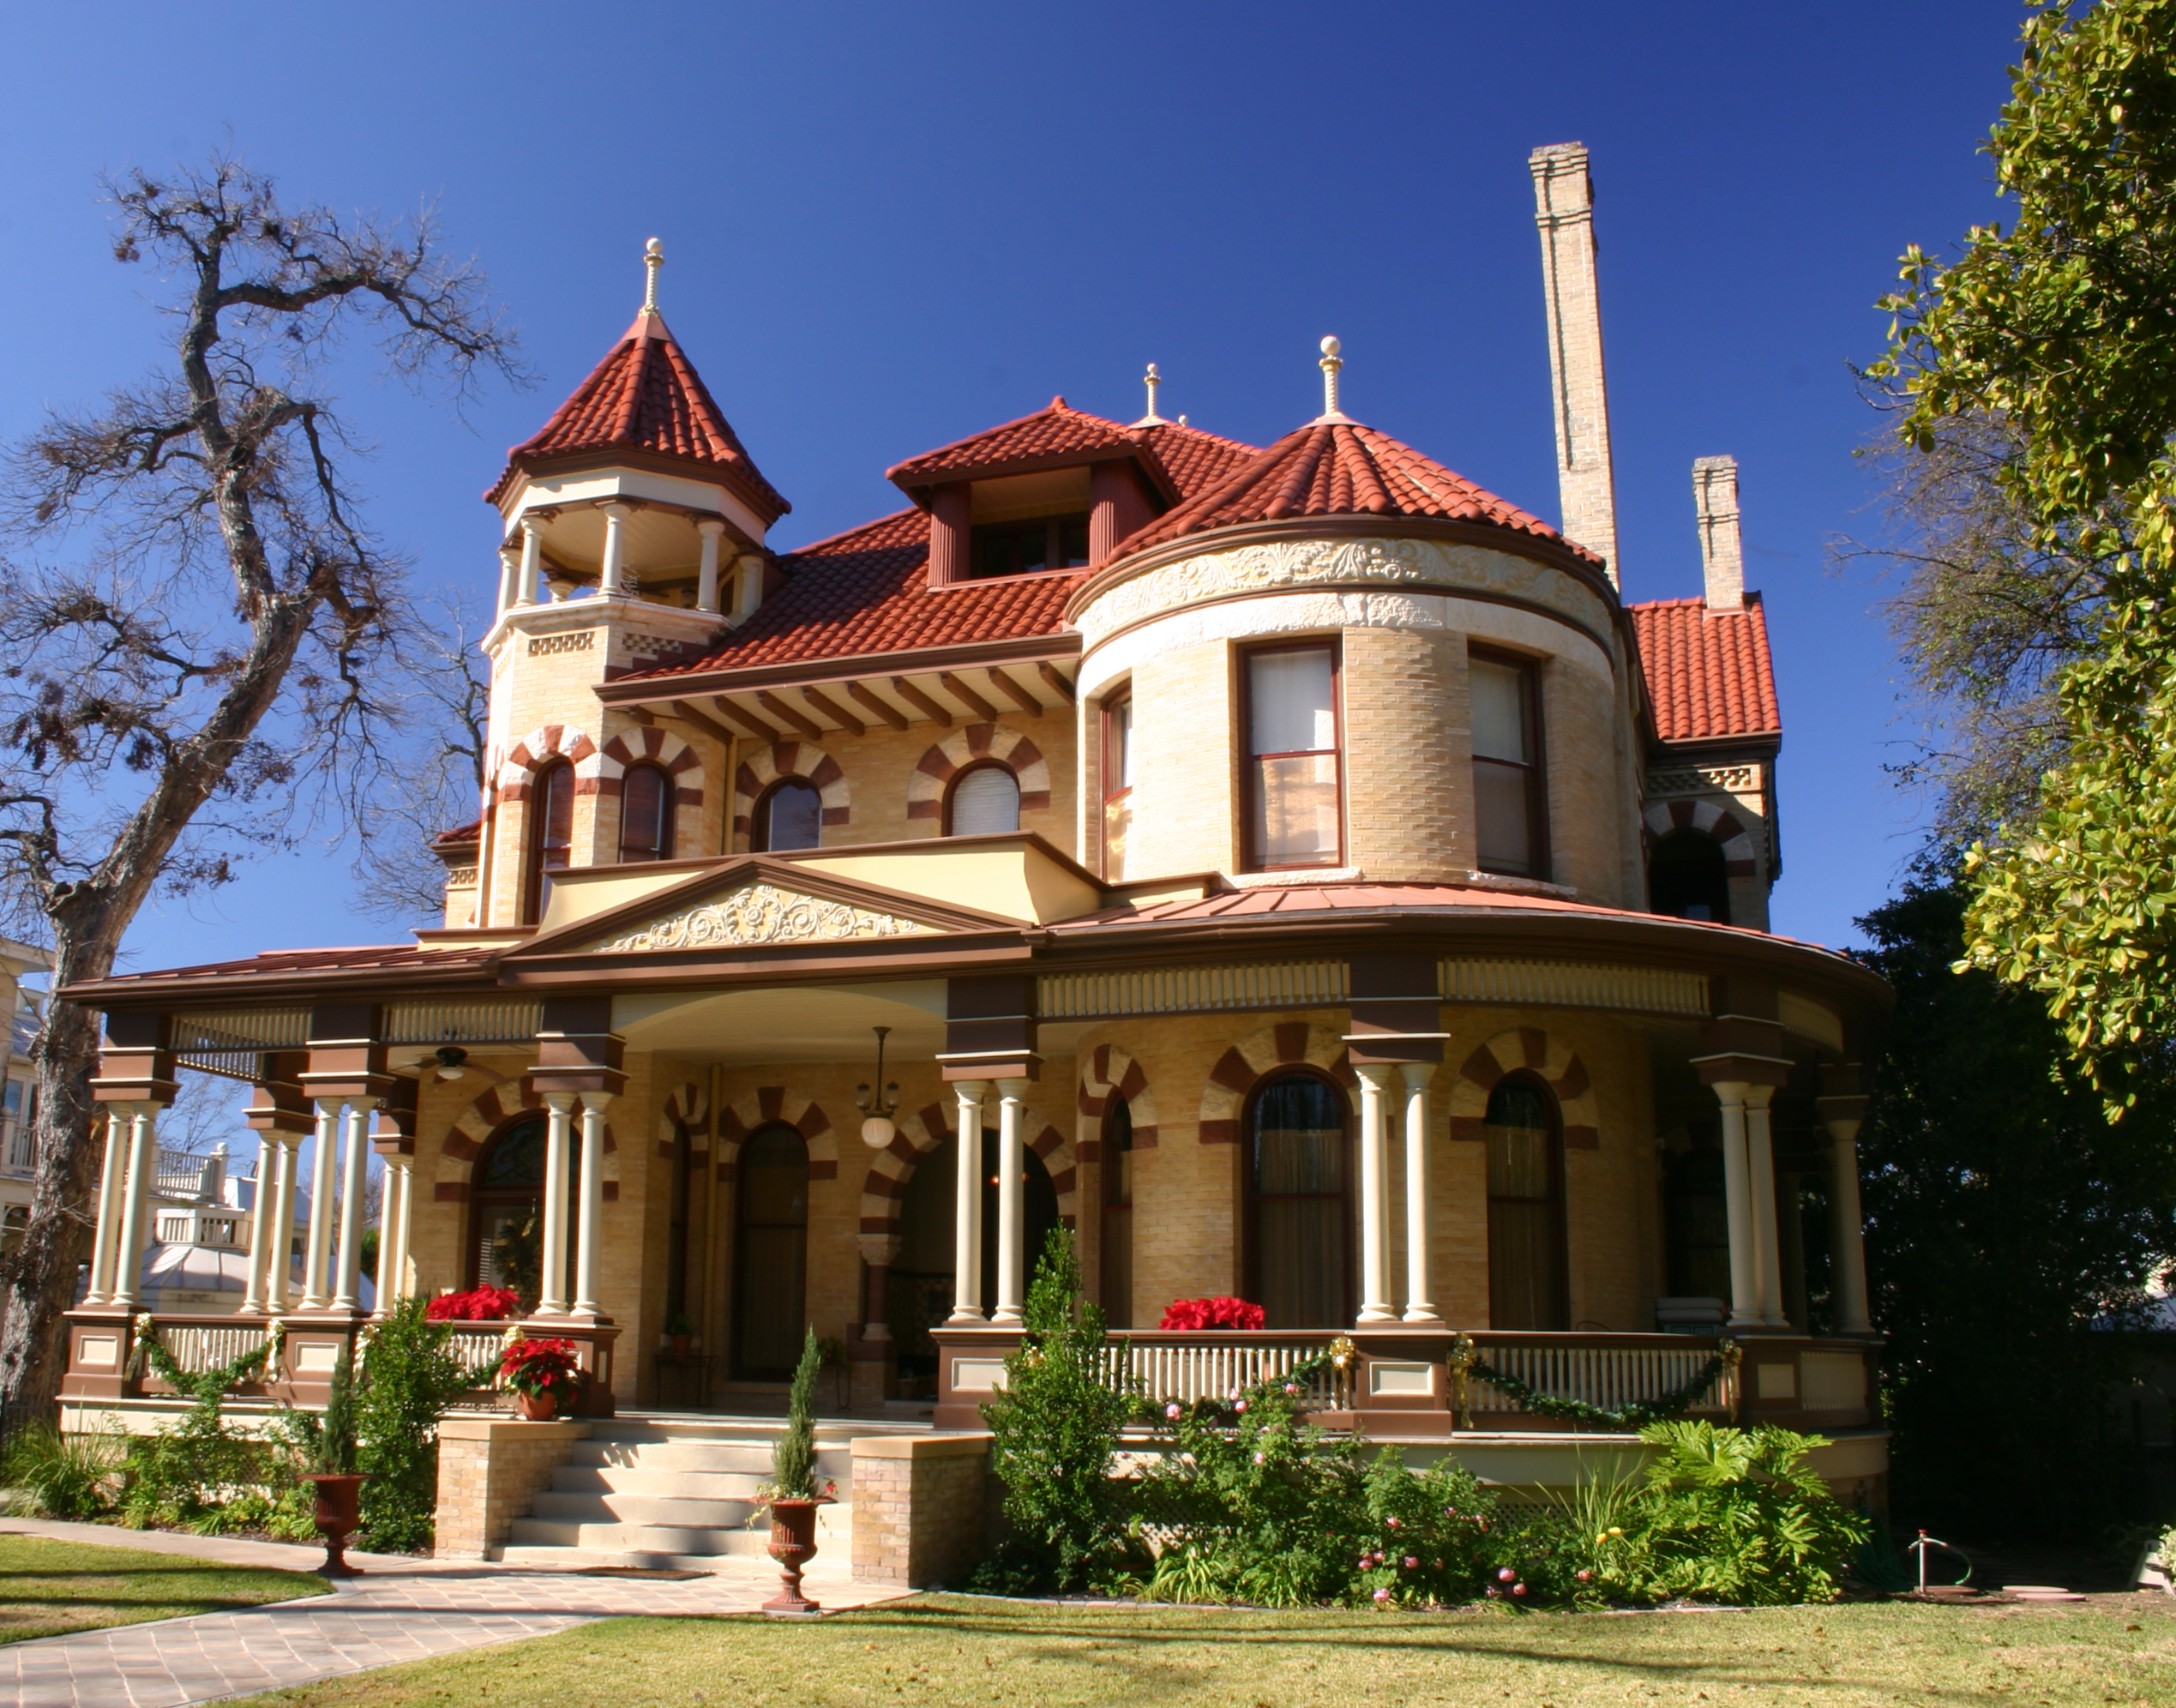 The Most Beautiful Historic Neighborhoods In America